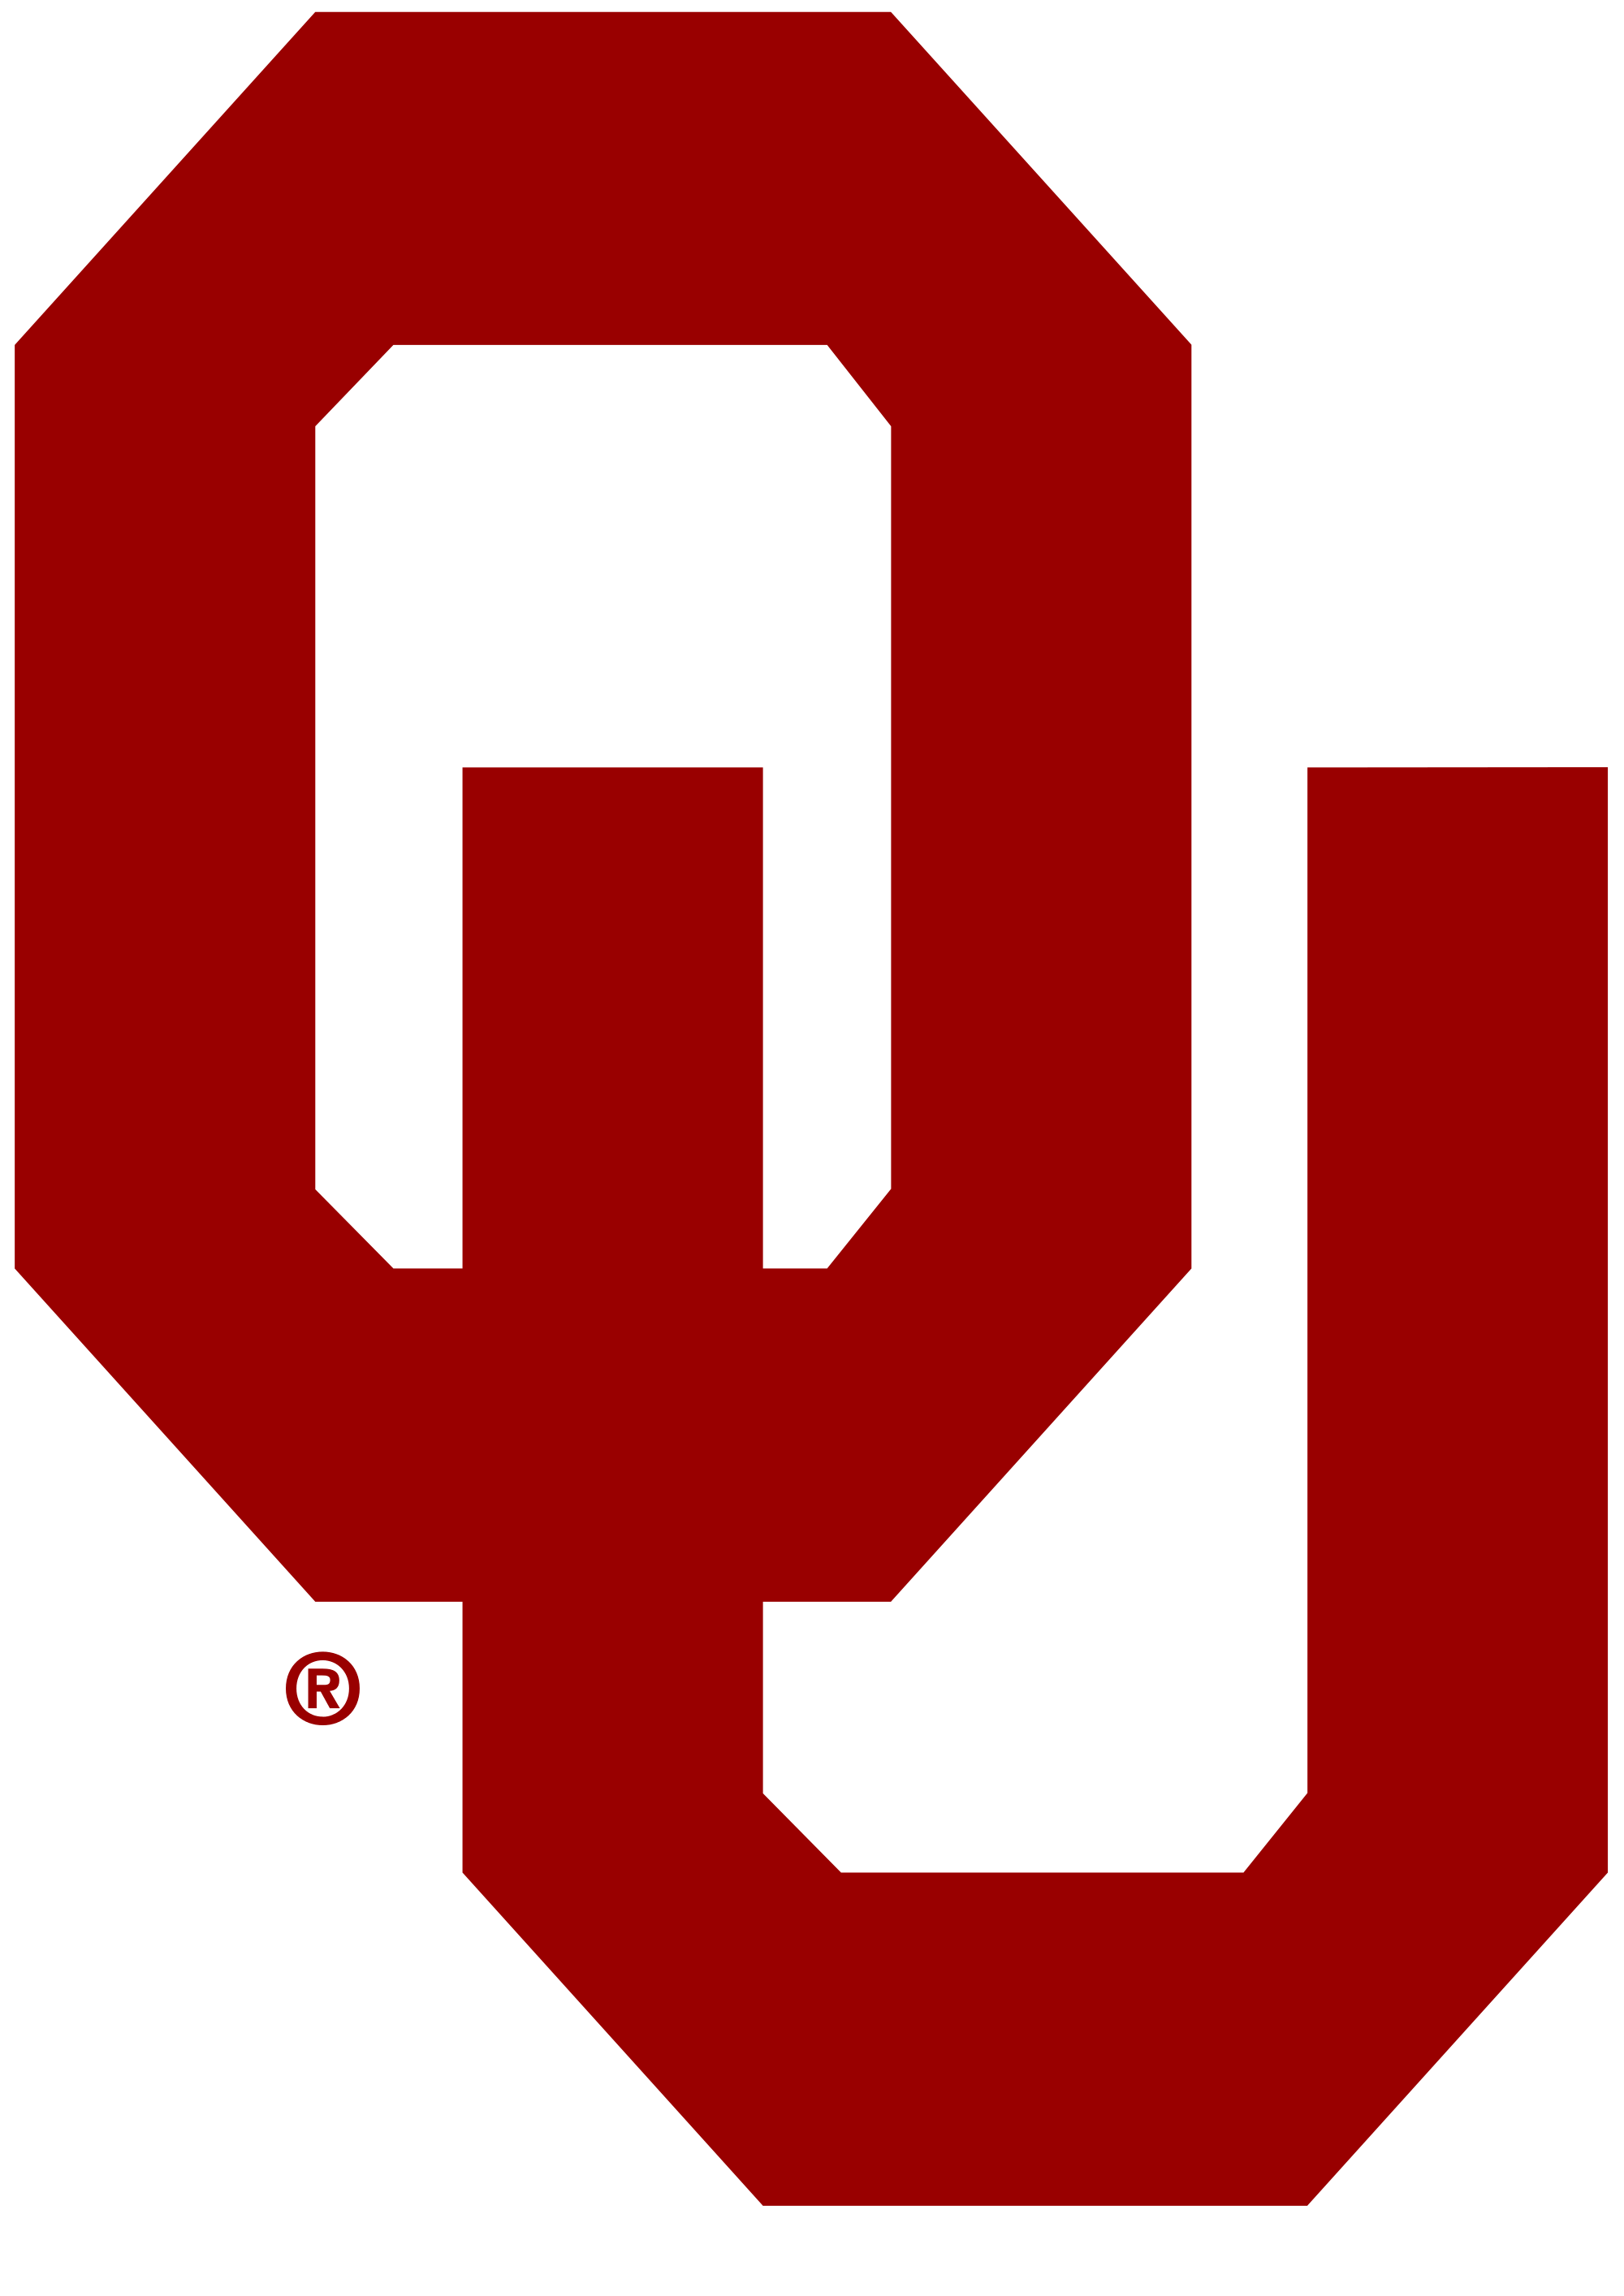 University Of Oklahoma PNG